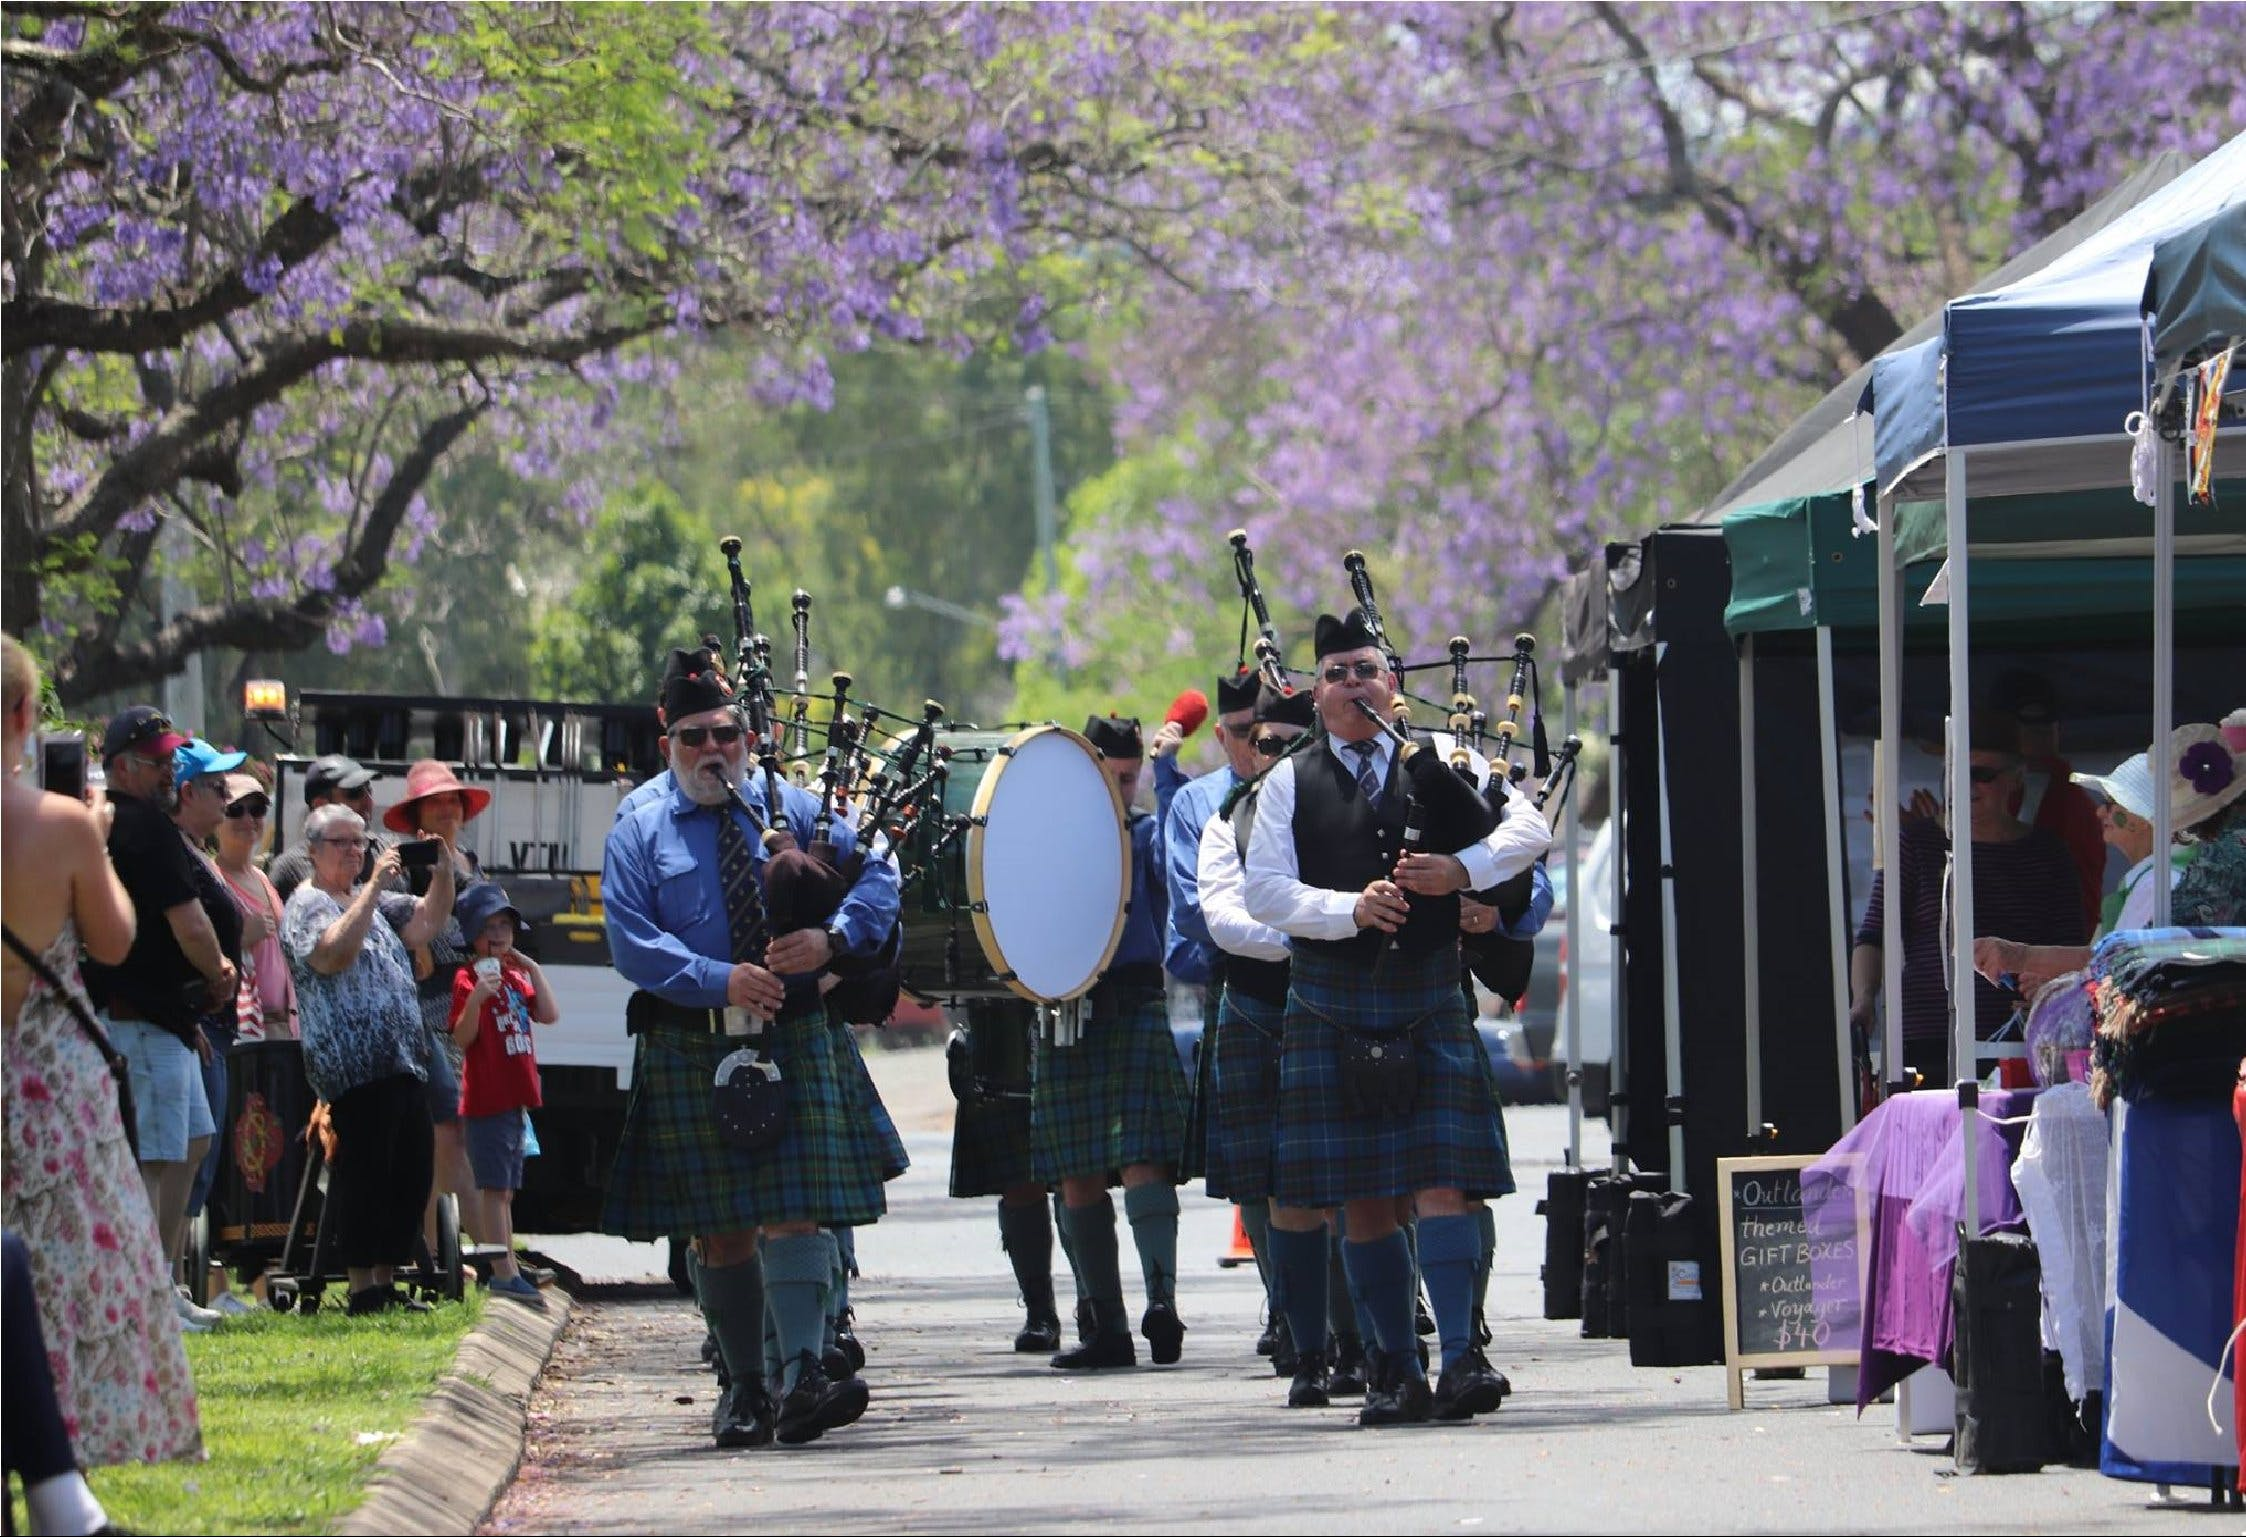 Celtic Festival of Queensland - WA Accommodation